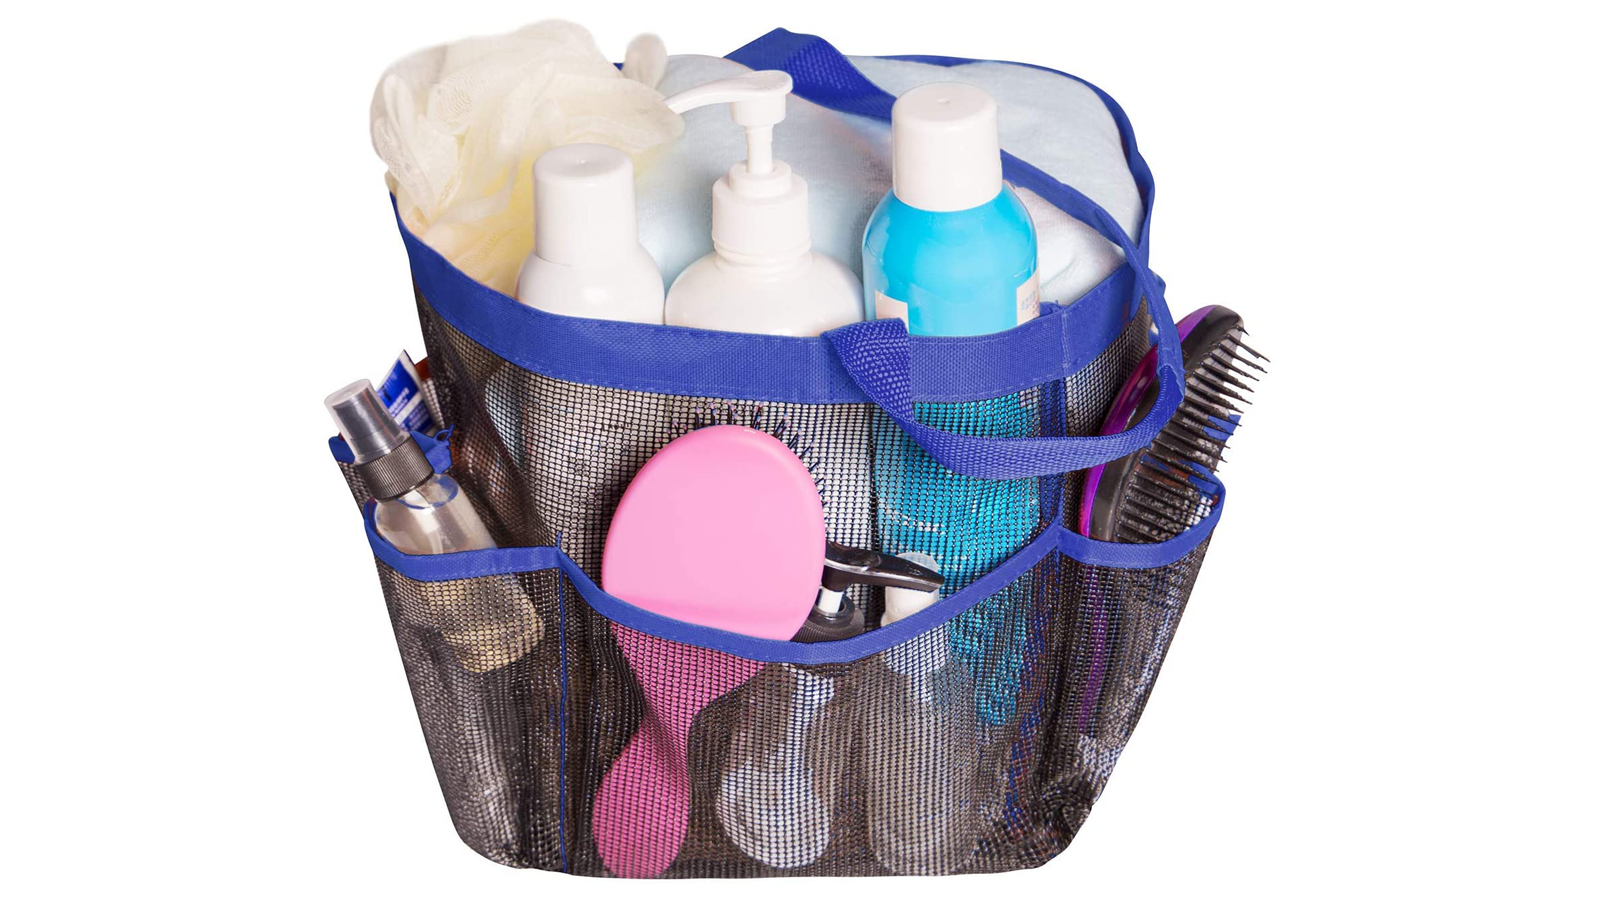 Keep Your Toiletries at the Ready with This Portable Mesh Shower Caddy